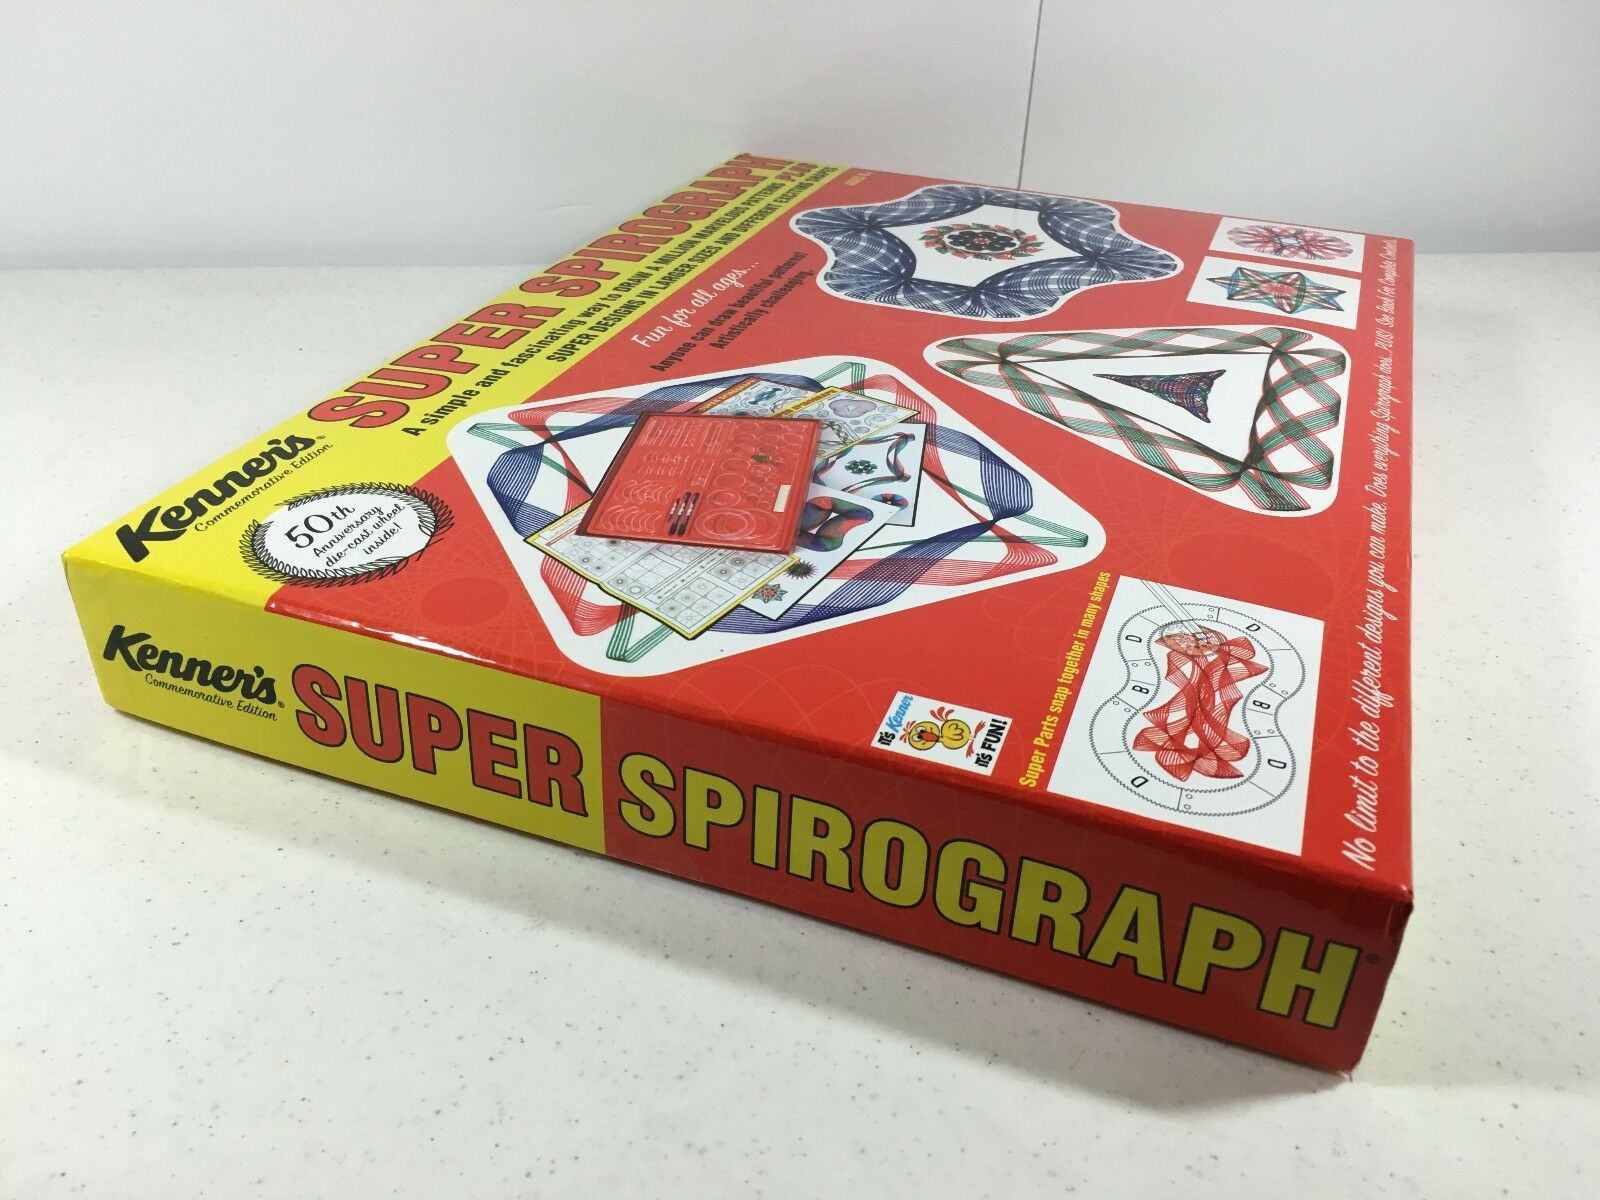 Super Spirograph Commemorative Classic Edition Kenner 50th 50th 50th Anniversary 01049 2924c8